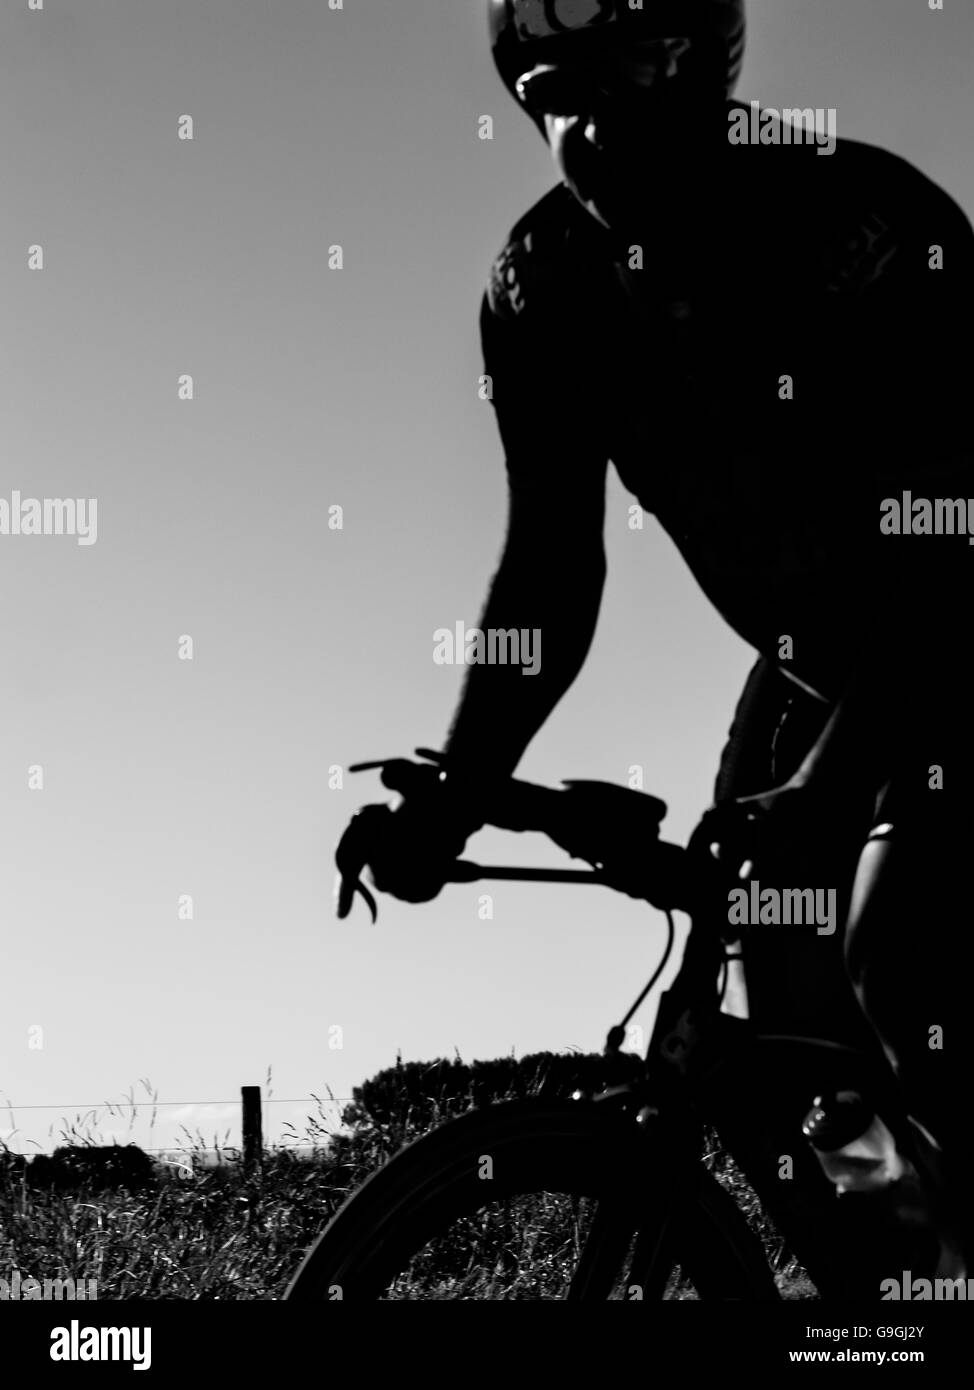 Cyclist closeup gritty image blurred in motion as competitive effort is applied to pedaling. - Stock Image